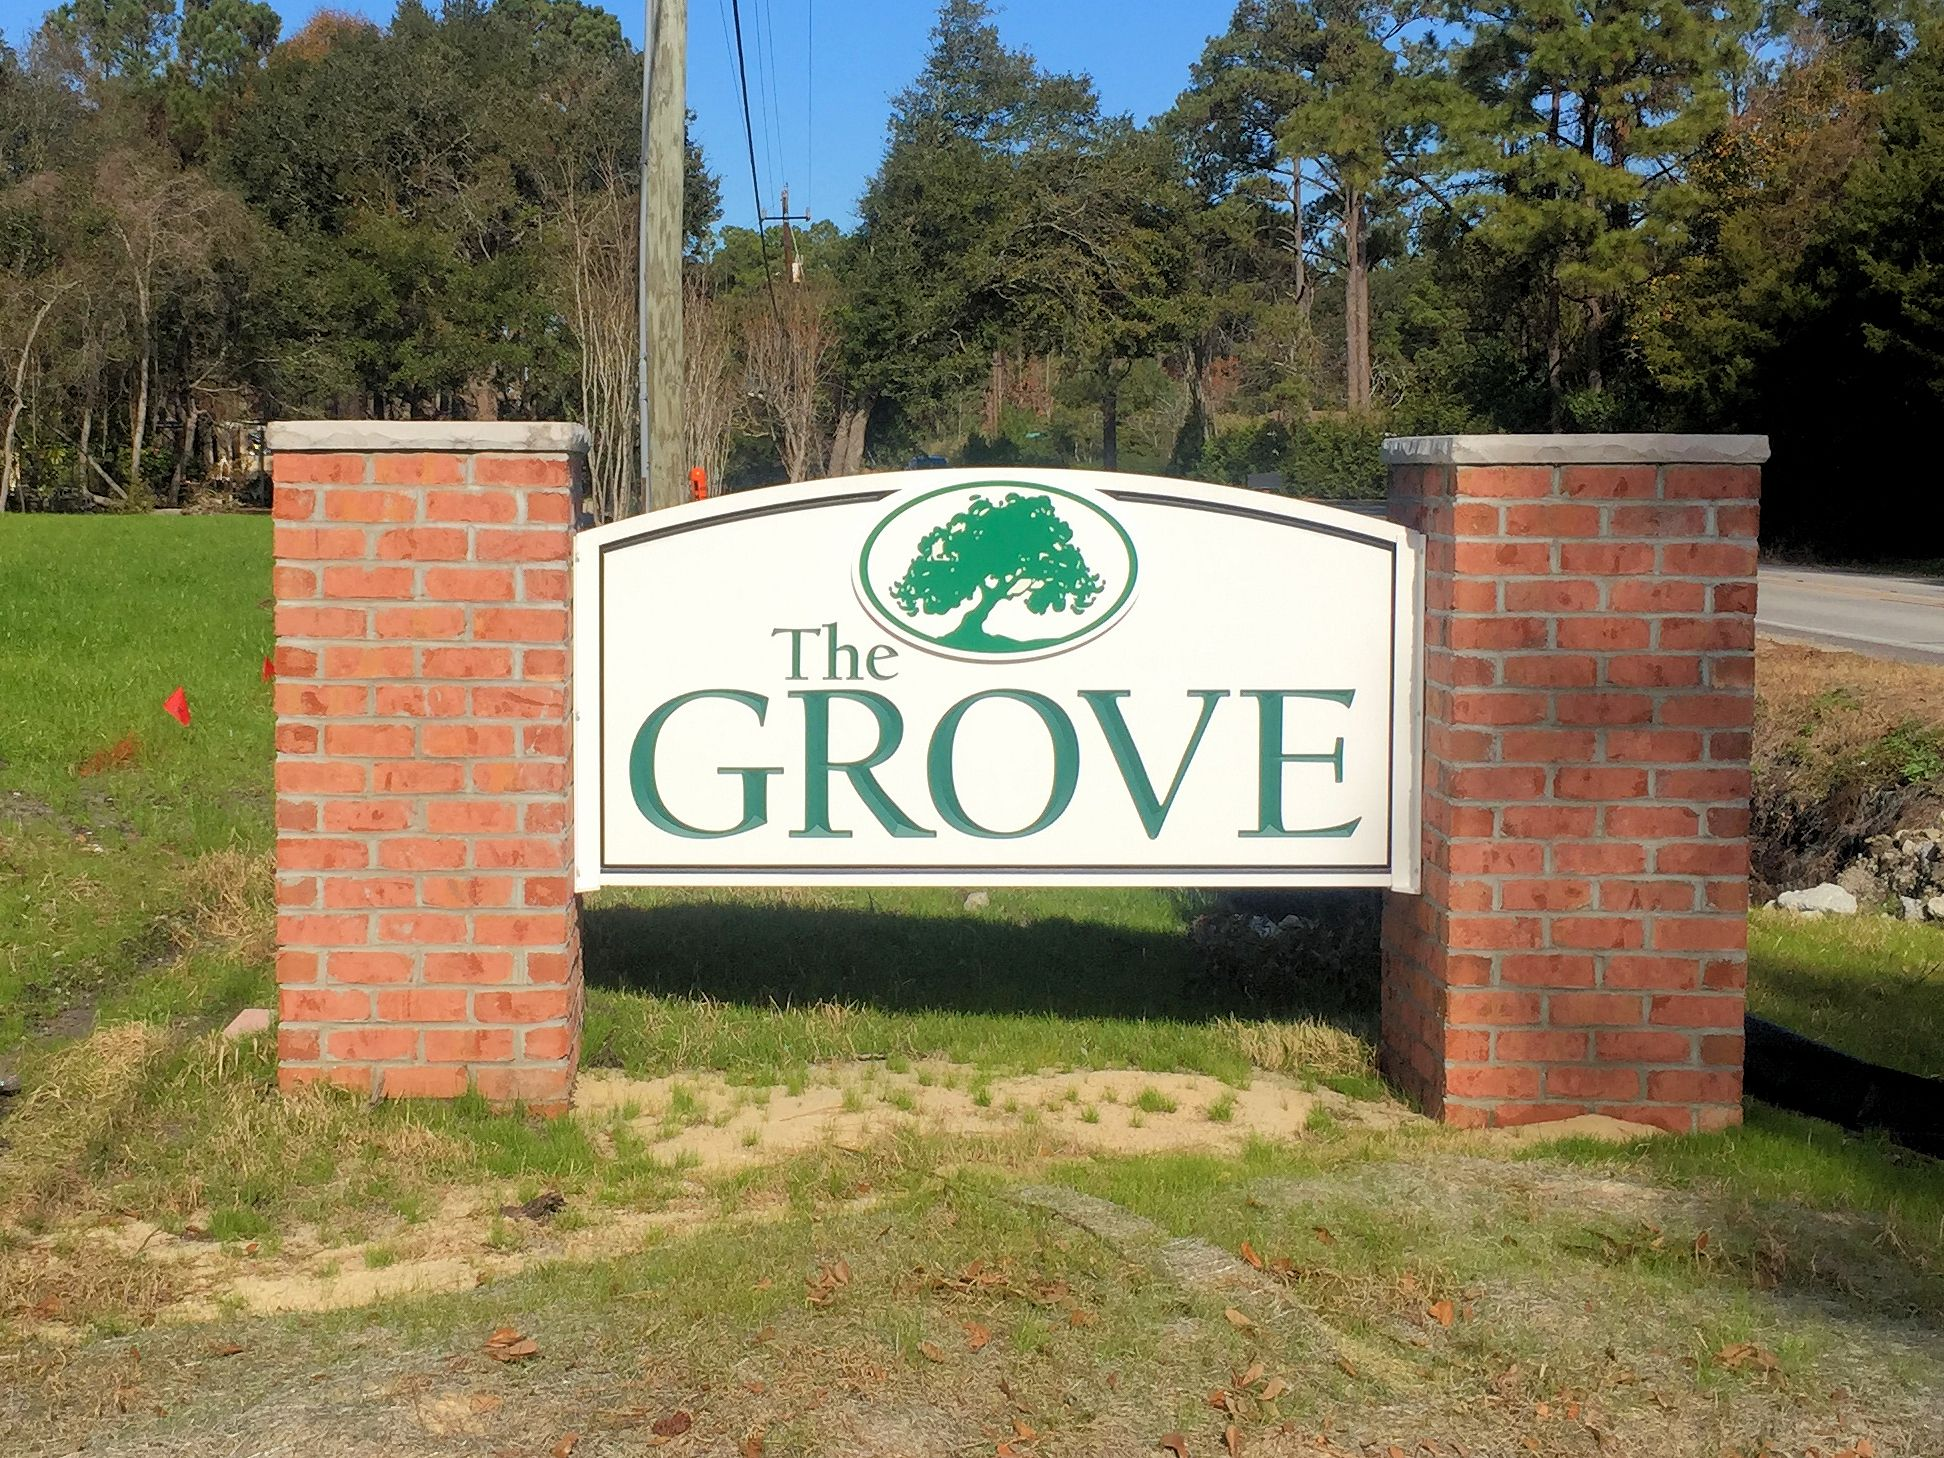 The Grove Entrance Sign